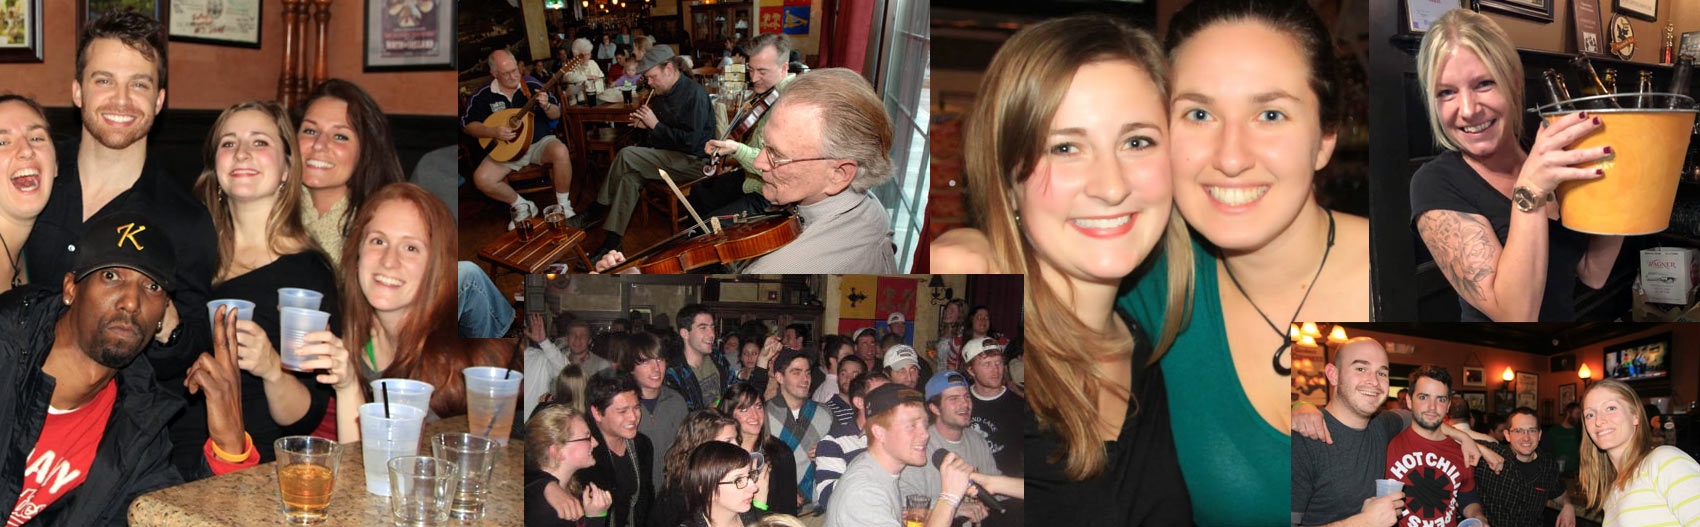 Events at Kilpatrick's Irish Pub - Ithaca NY